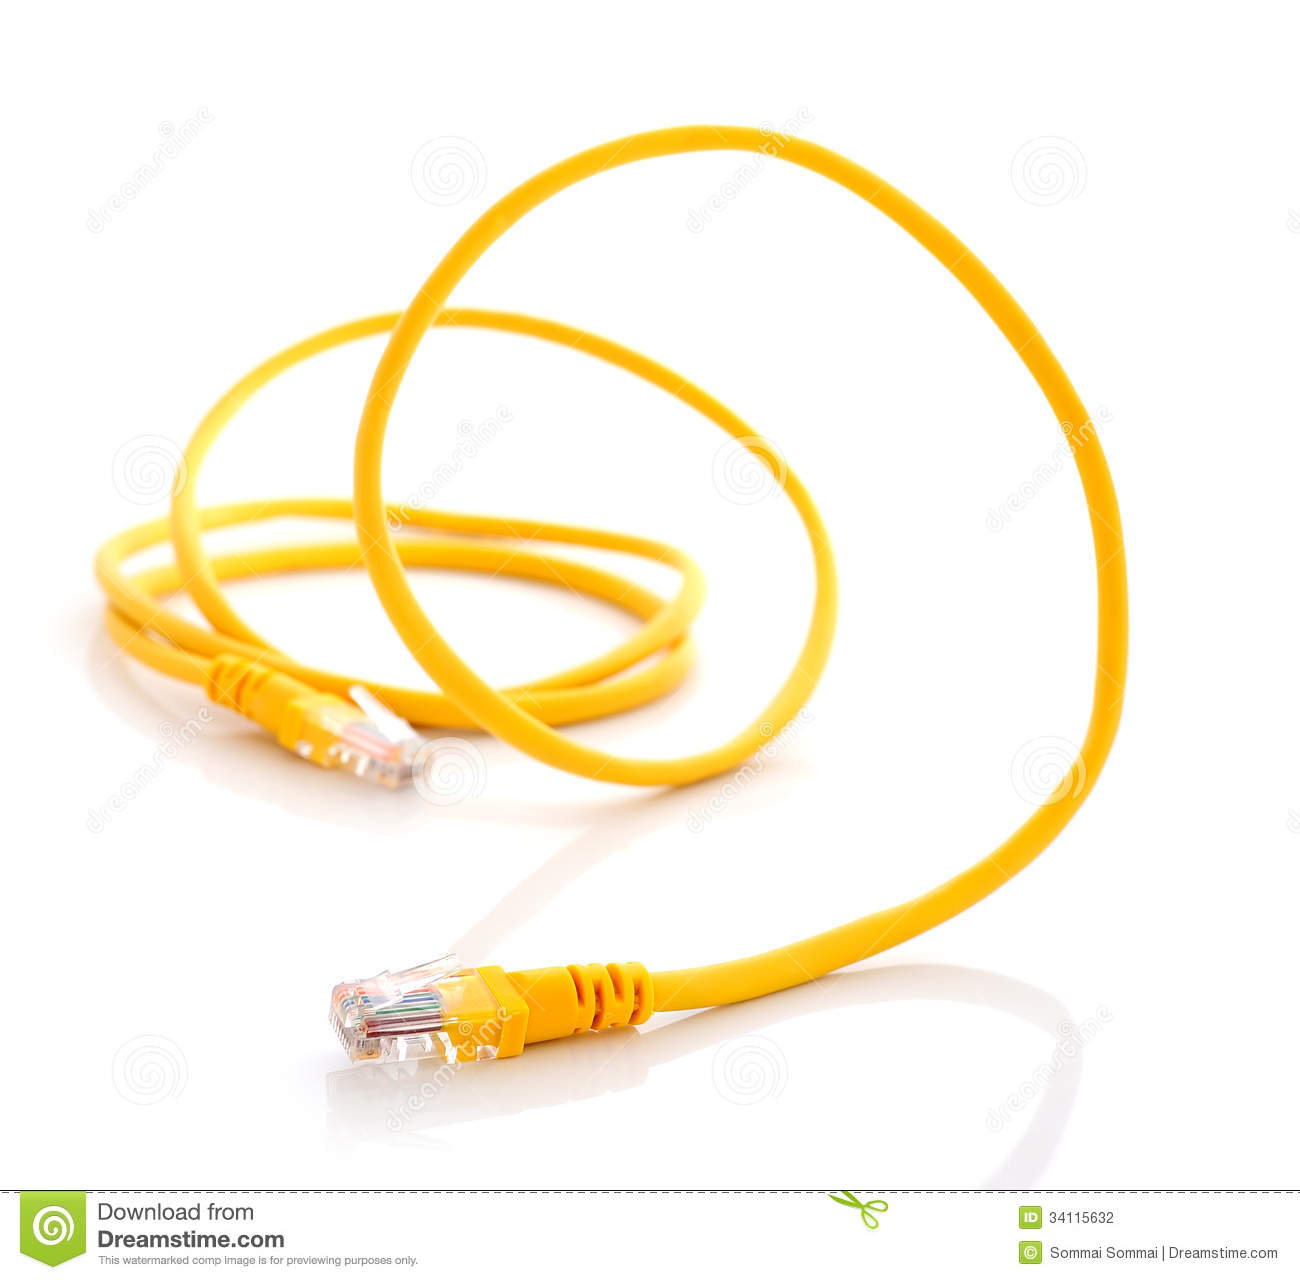 Cat5 Wiring Background Diagrams Computer Cat 5 Diagram Ethernet Cable On White Stock Crossover Printable